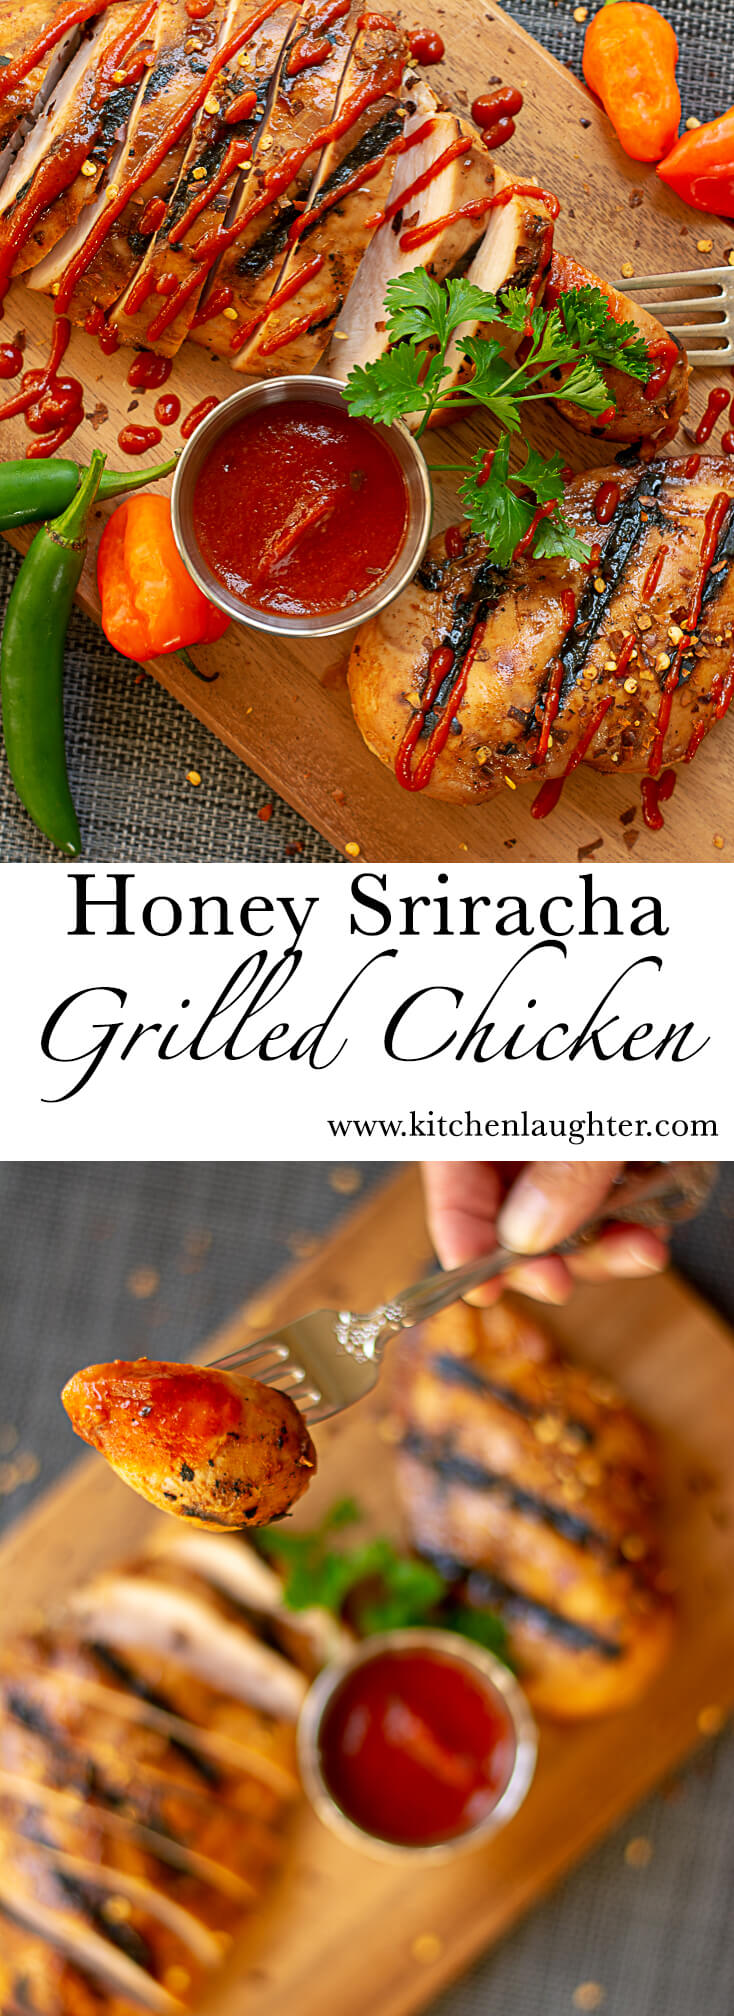 Grilled Honey Sriracha Chicken #Grilled #BGE #BigGreenEgg #Sriracha #Grilling #Chicken #GrillPorn #GrillGrate